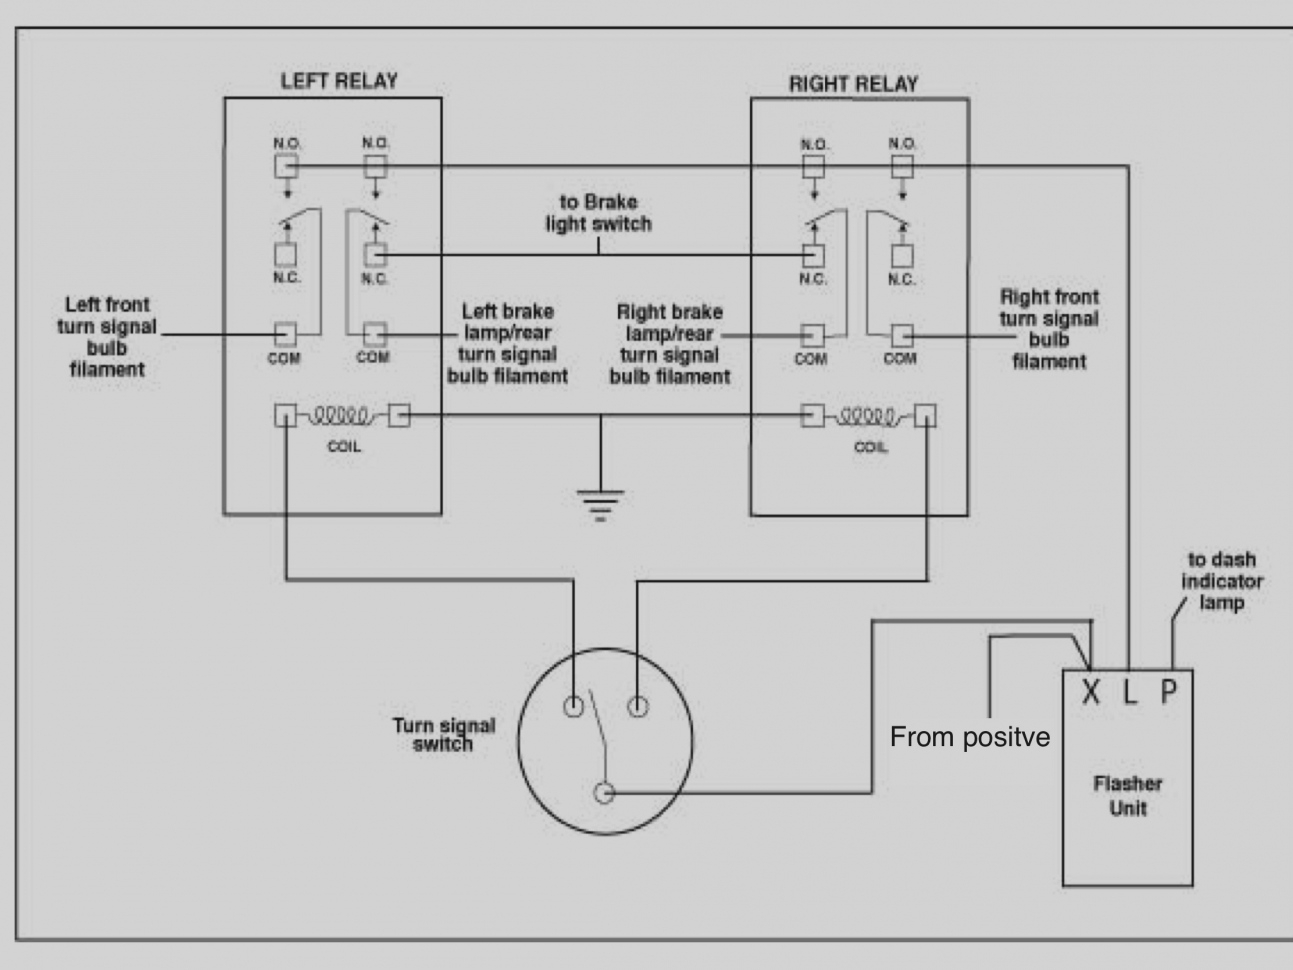 800 Rzr Awd Wiring Diagram Great Installation Of 2009 Polaris Ranger Simple Post Rh 21 Asiagourmet Igb De 2011